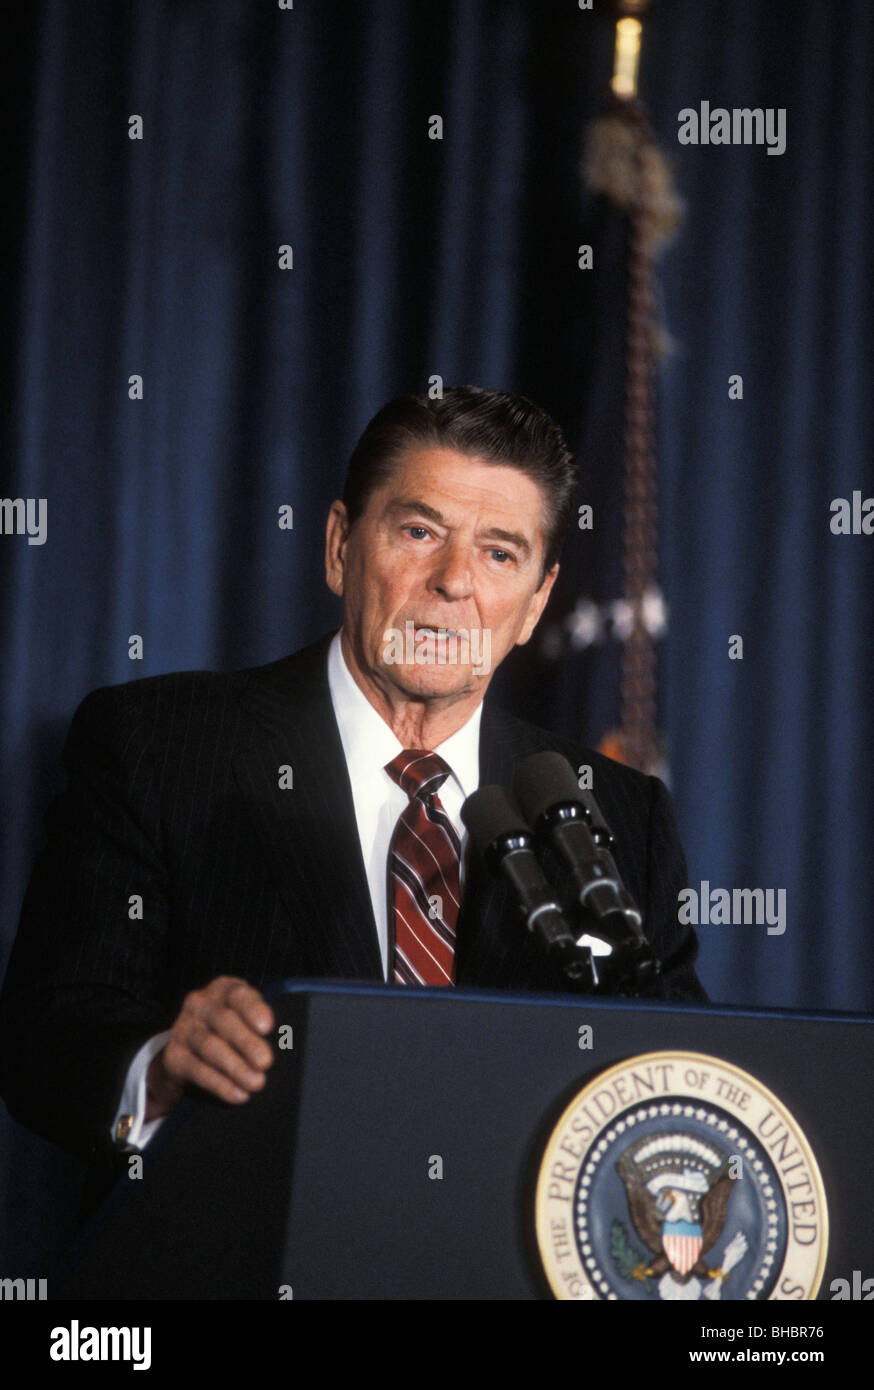 US President Ronald Reagan at press conference day after his reelection 1984 Los Angeles California - Stock Image